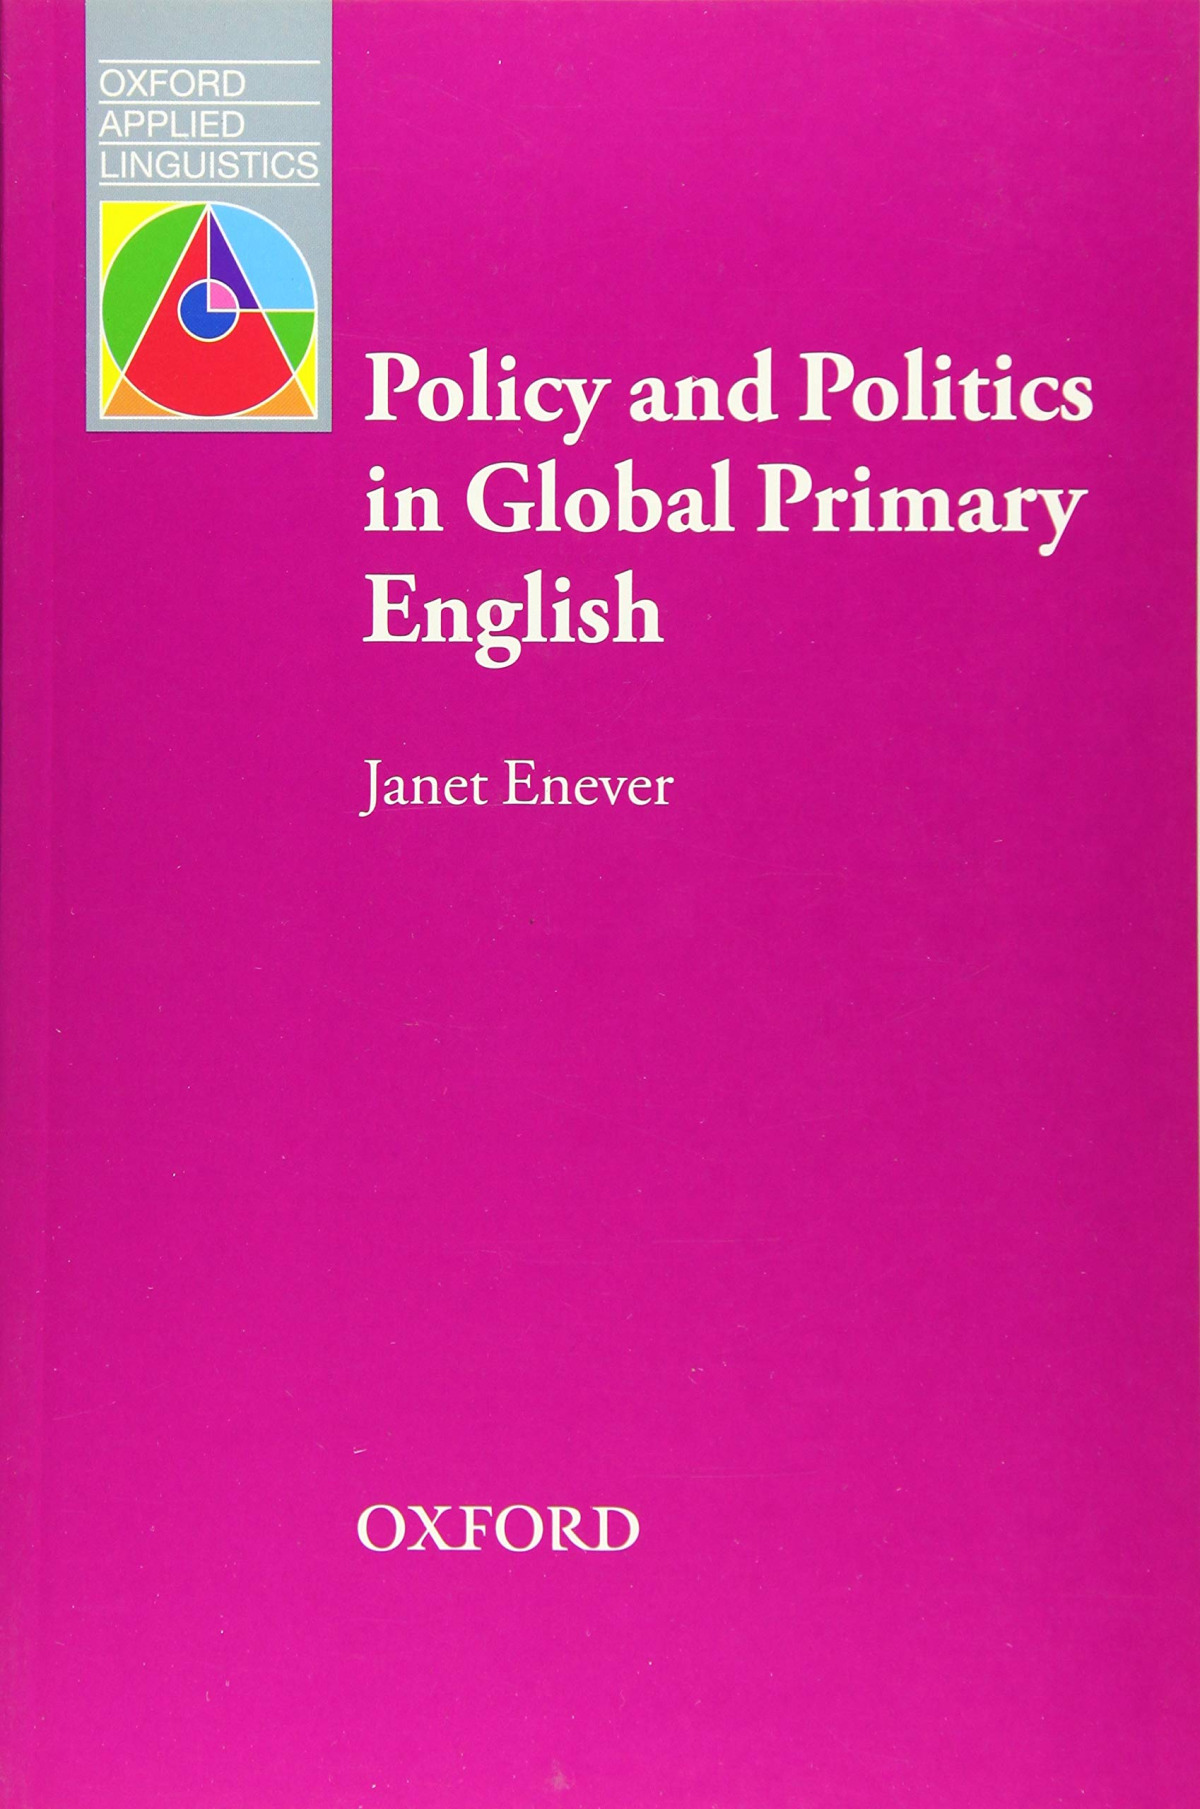 OAL/POLICY AND POLITICS IN GLOBAL PRIMARY ENGLISH (APPLIED)